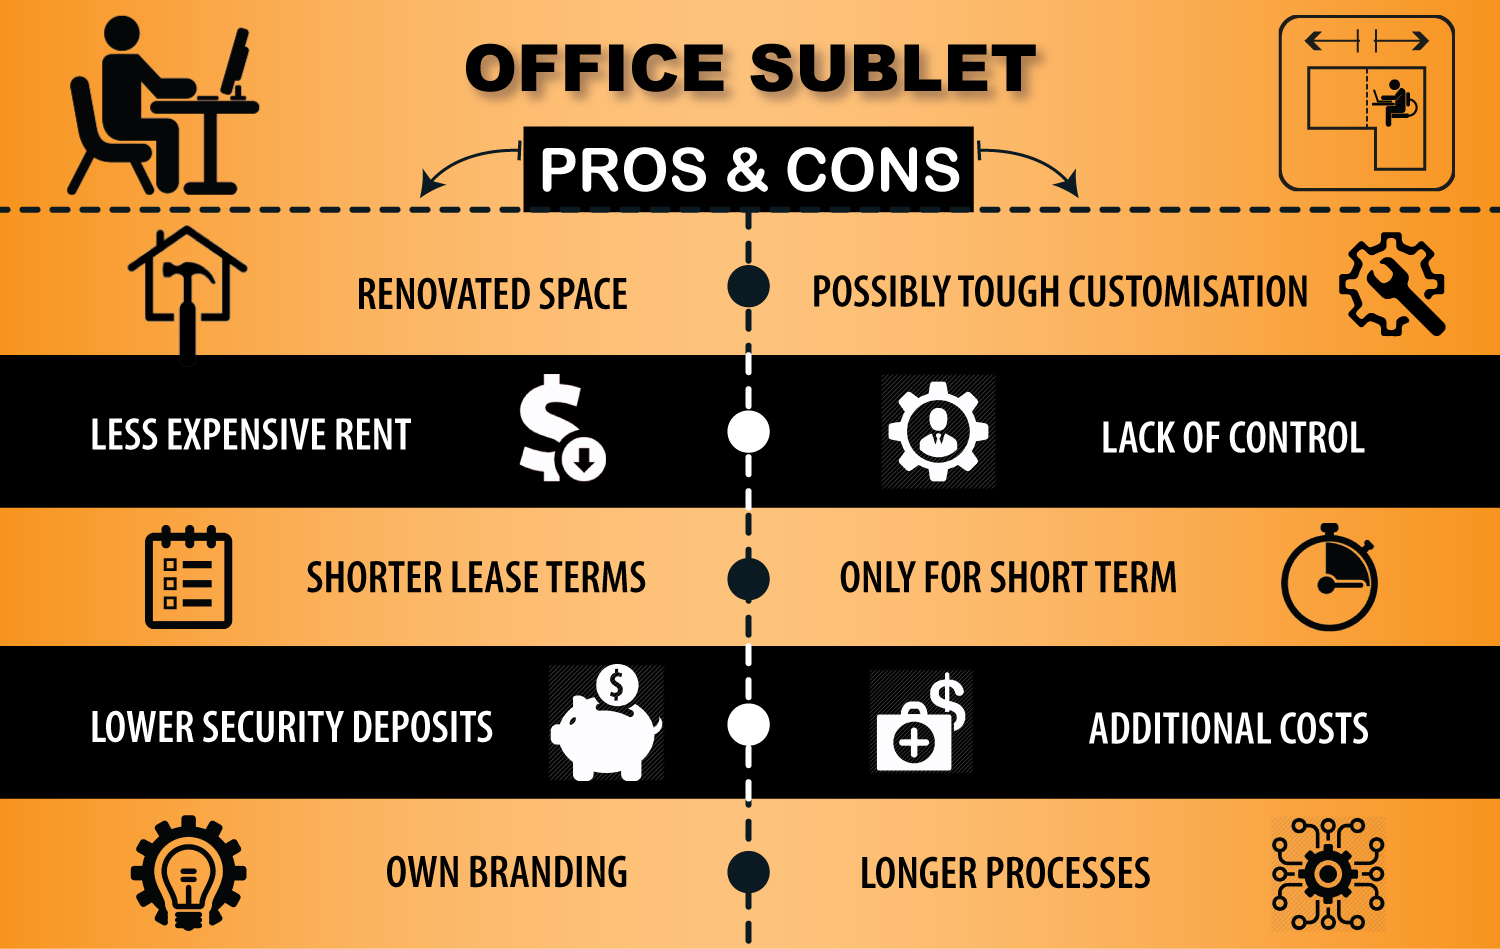 Pros and Cons of Office Sublets